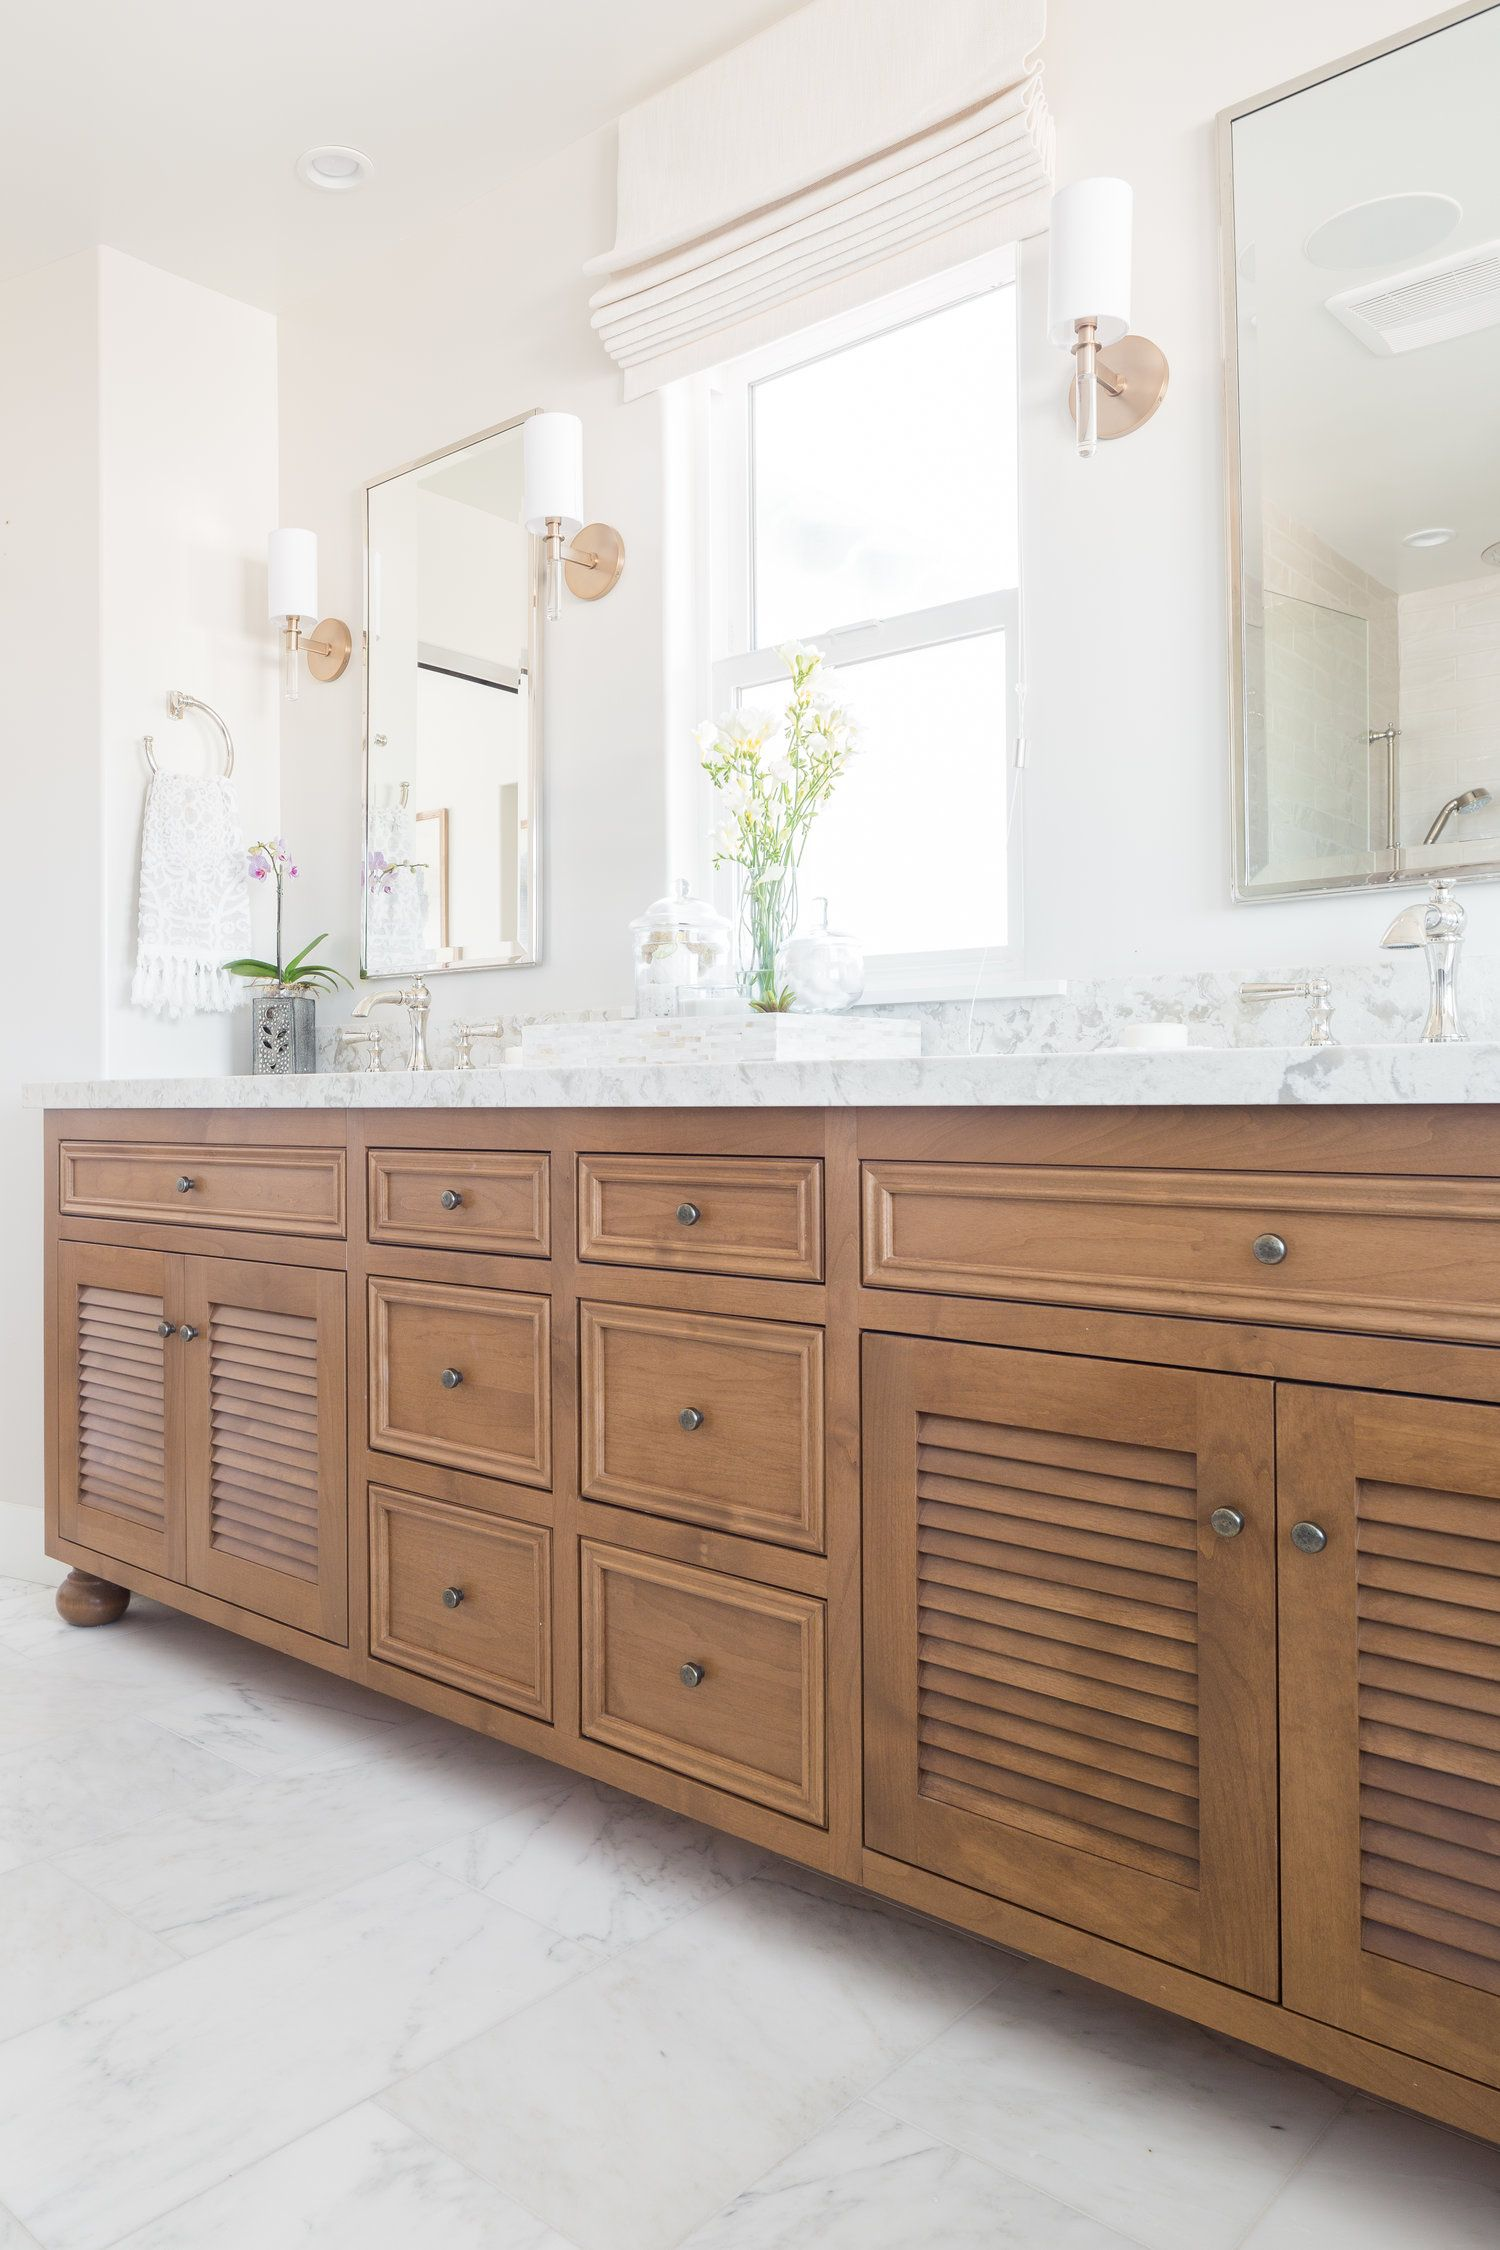 Master Bath Cabinet in Alder with Louvered Doors —